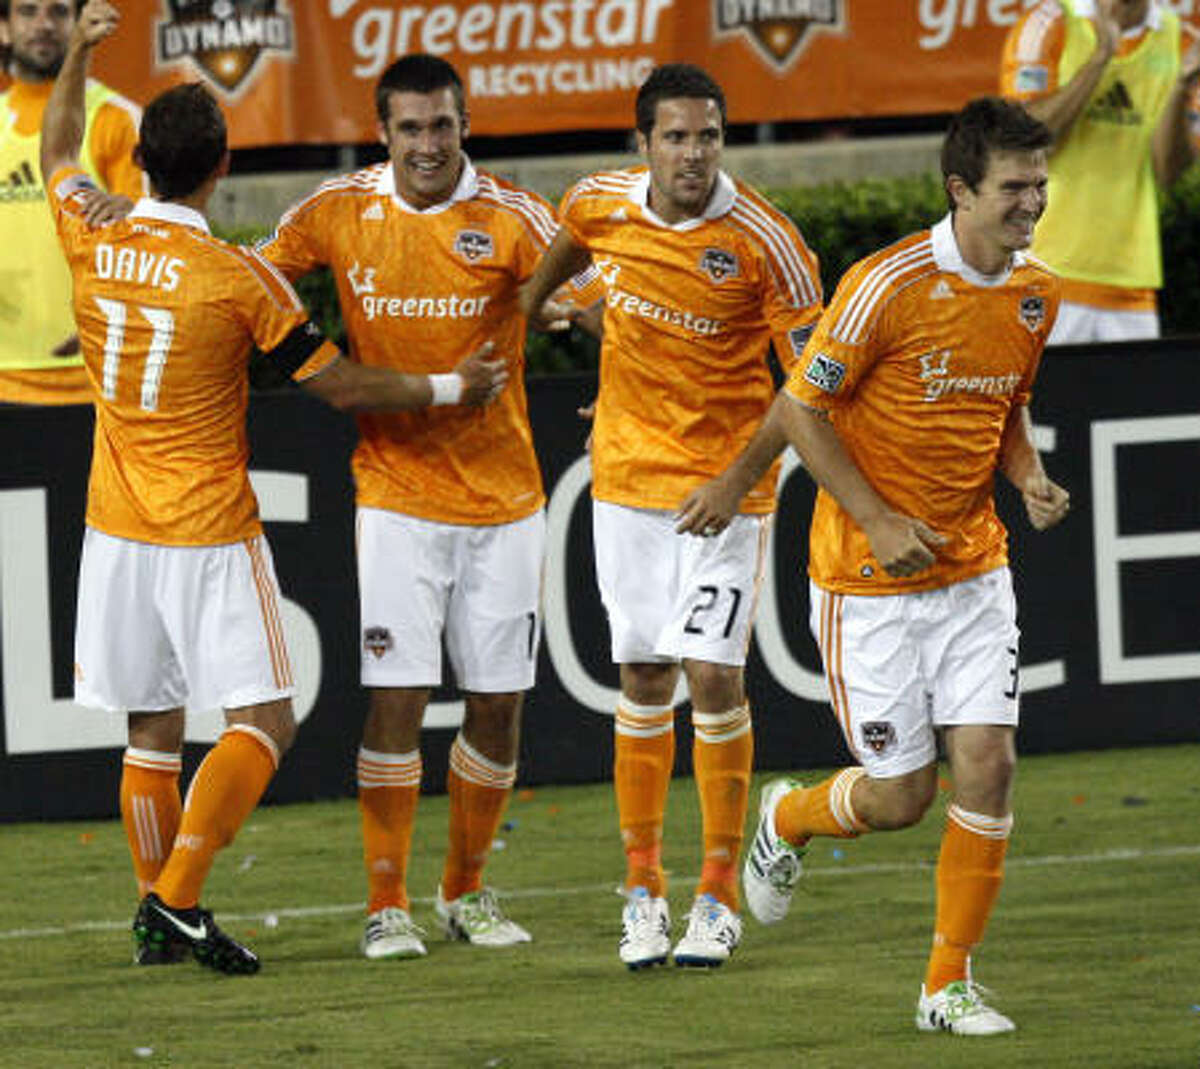 April 29: Dynamo 4, D.C. United 1 Forward Will Bruin, second from left, was the man of the hour in Friday night's match against D.C. United, recording his first career hat trick to lead the Dynamo to their third win in four matches.